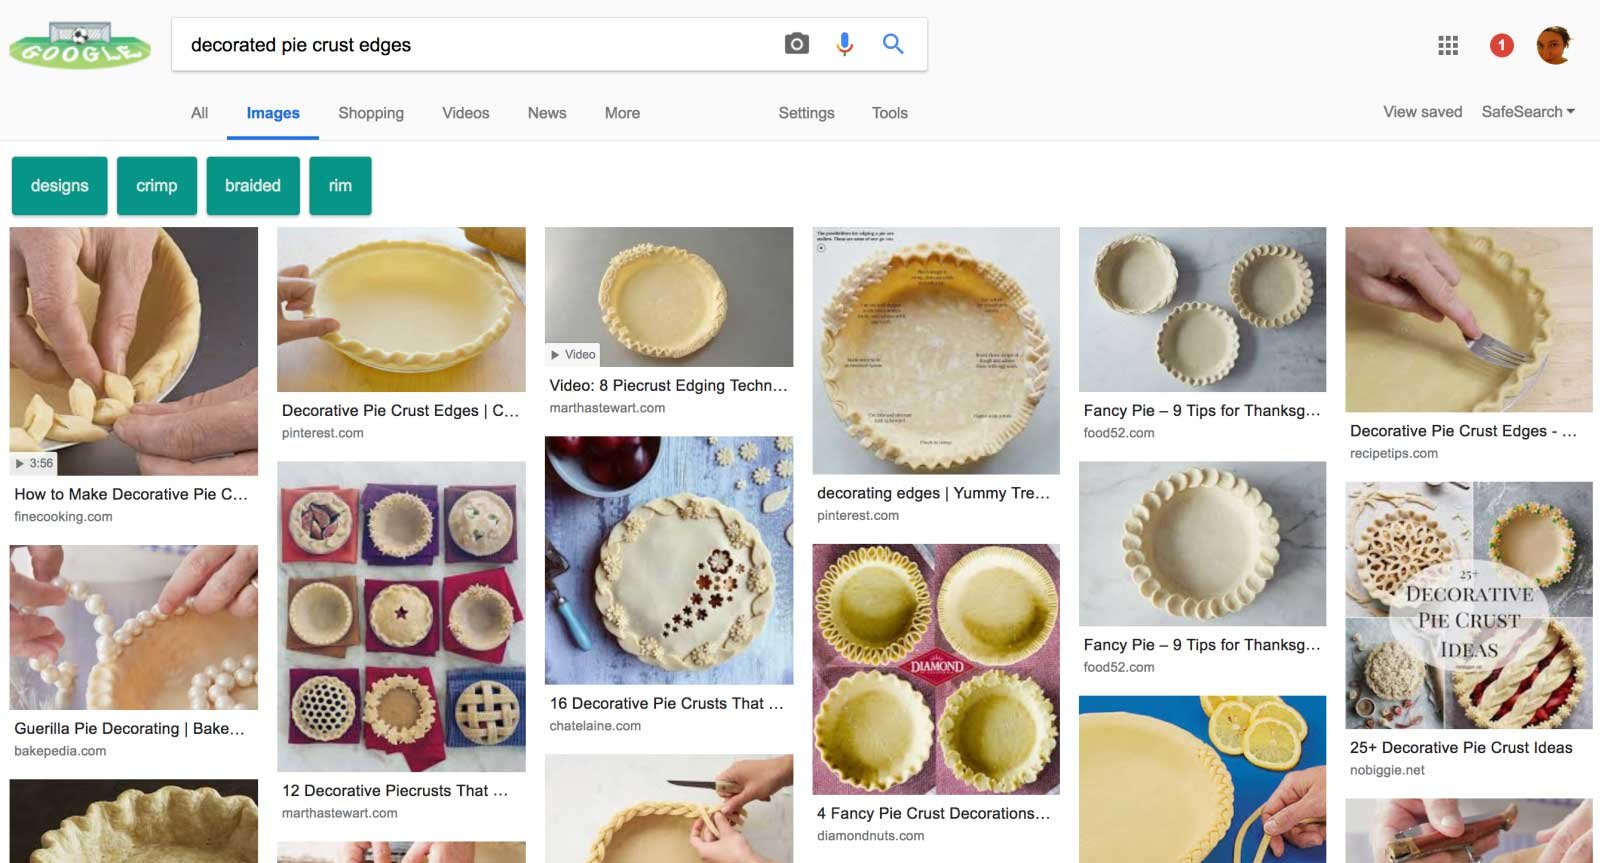 Google's Pinterest-like image search layout